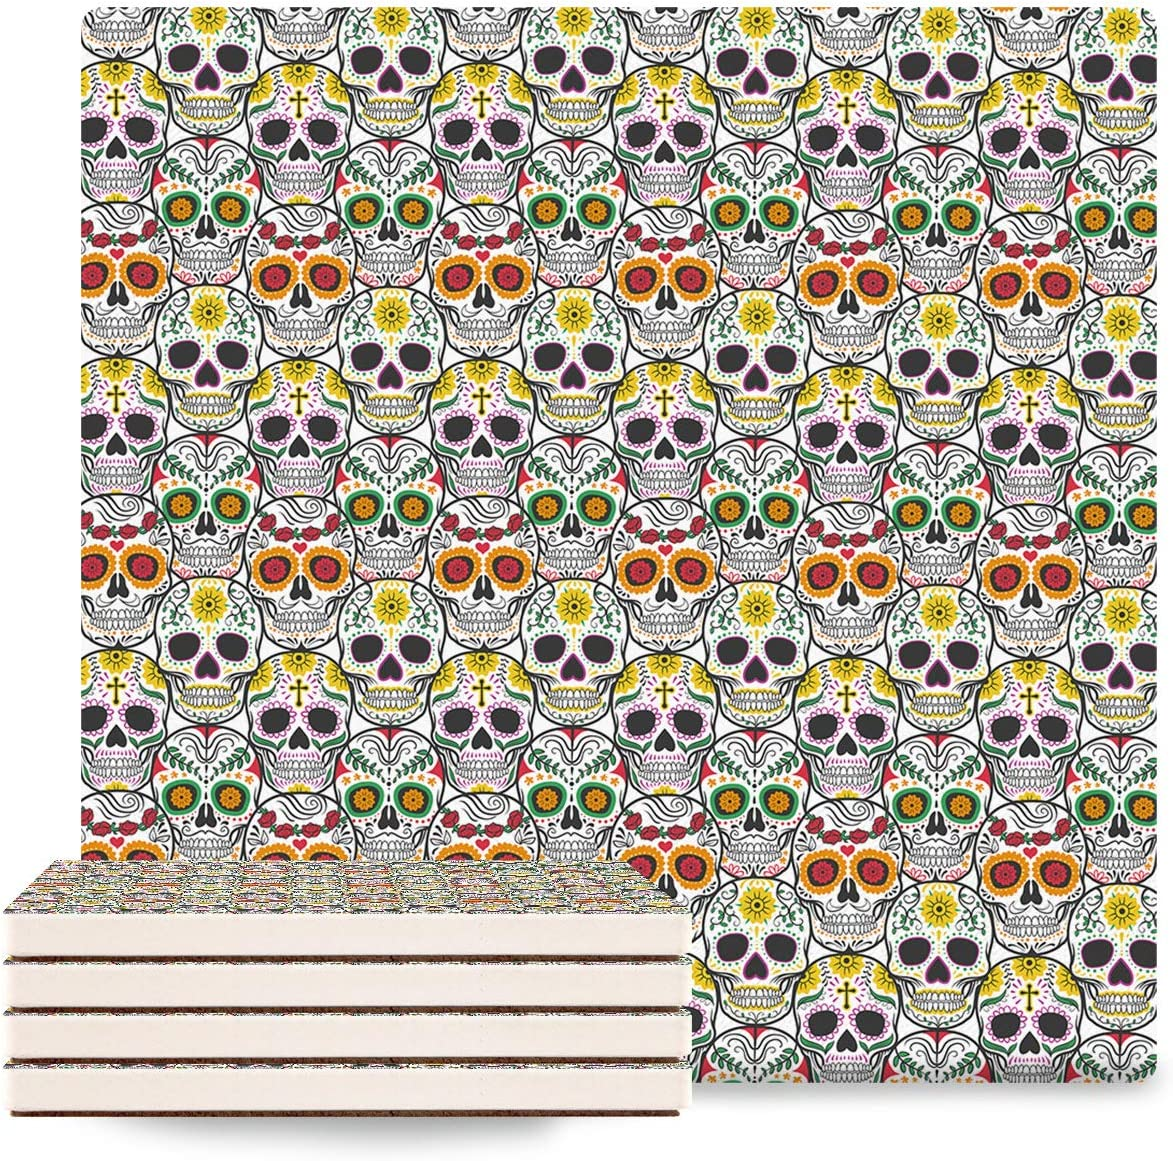 8 piece Coasters Skulls Decor Limited Special Price Ceramic w Stone Absorbent Max 83% OFF